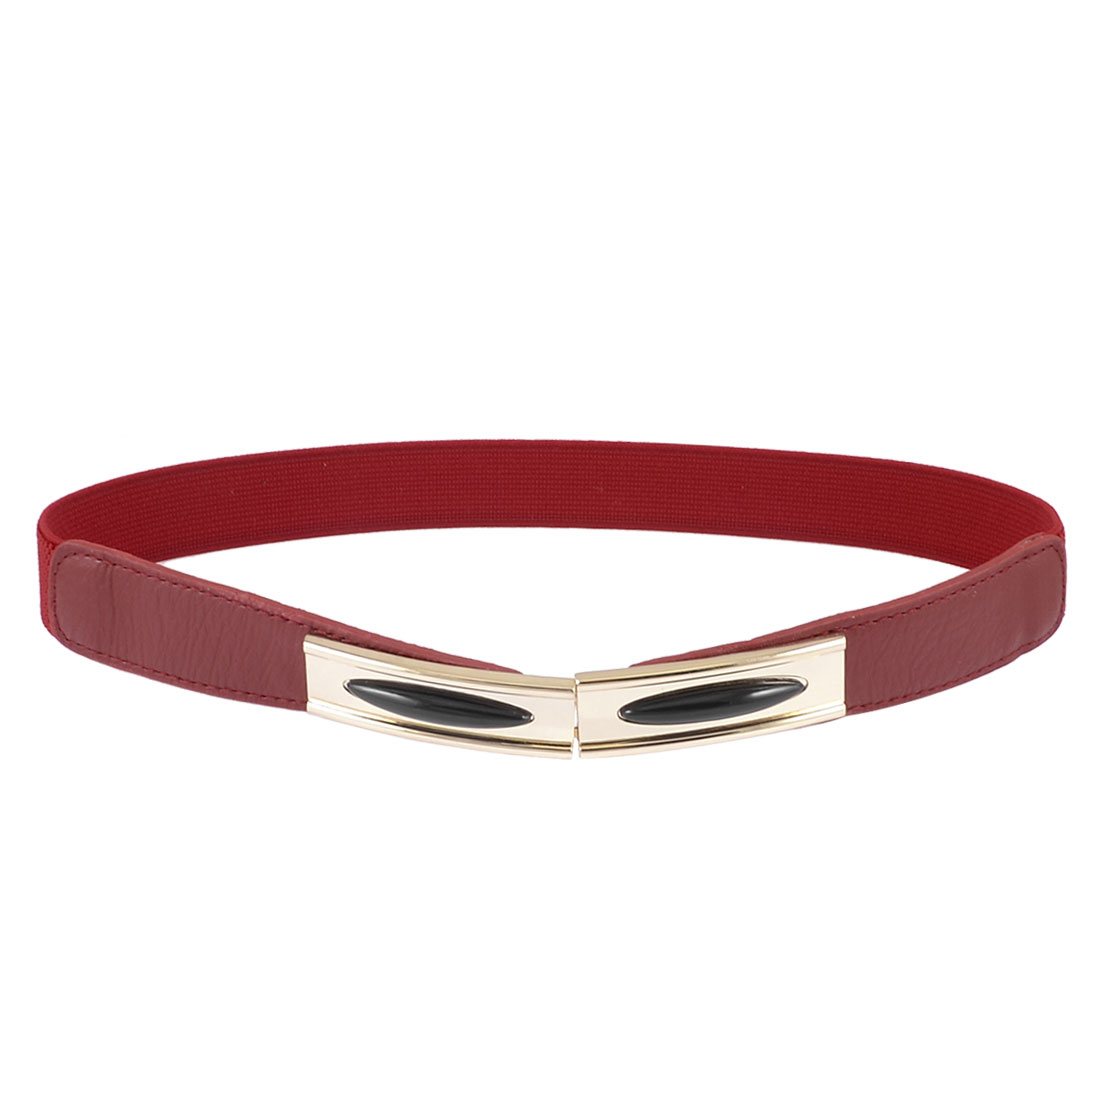 Women Rectangle Interlocking Closure Textured Band Cinch Skinny Belt Burgundy